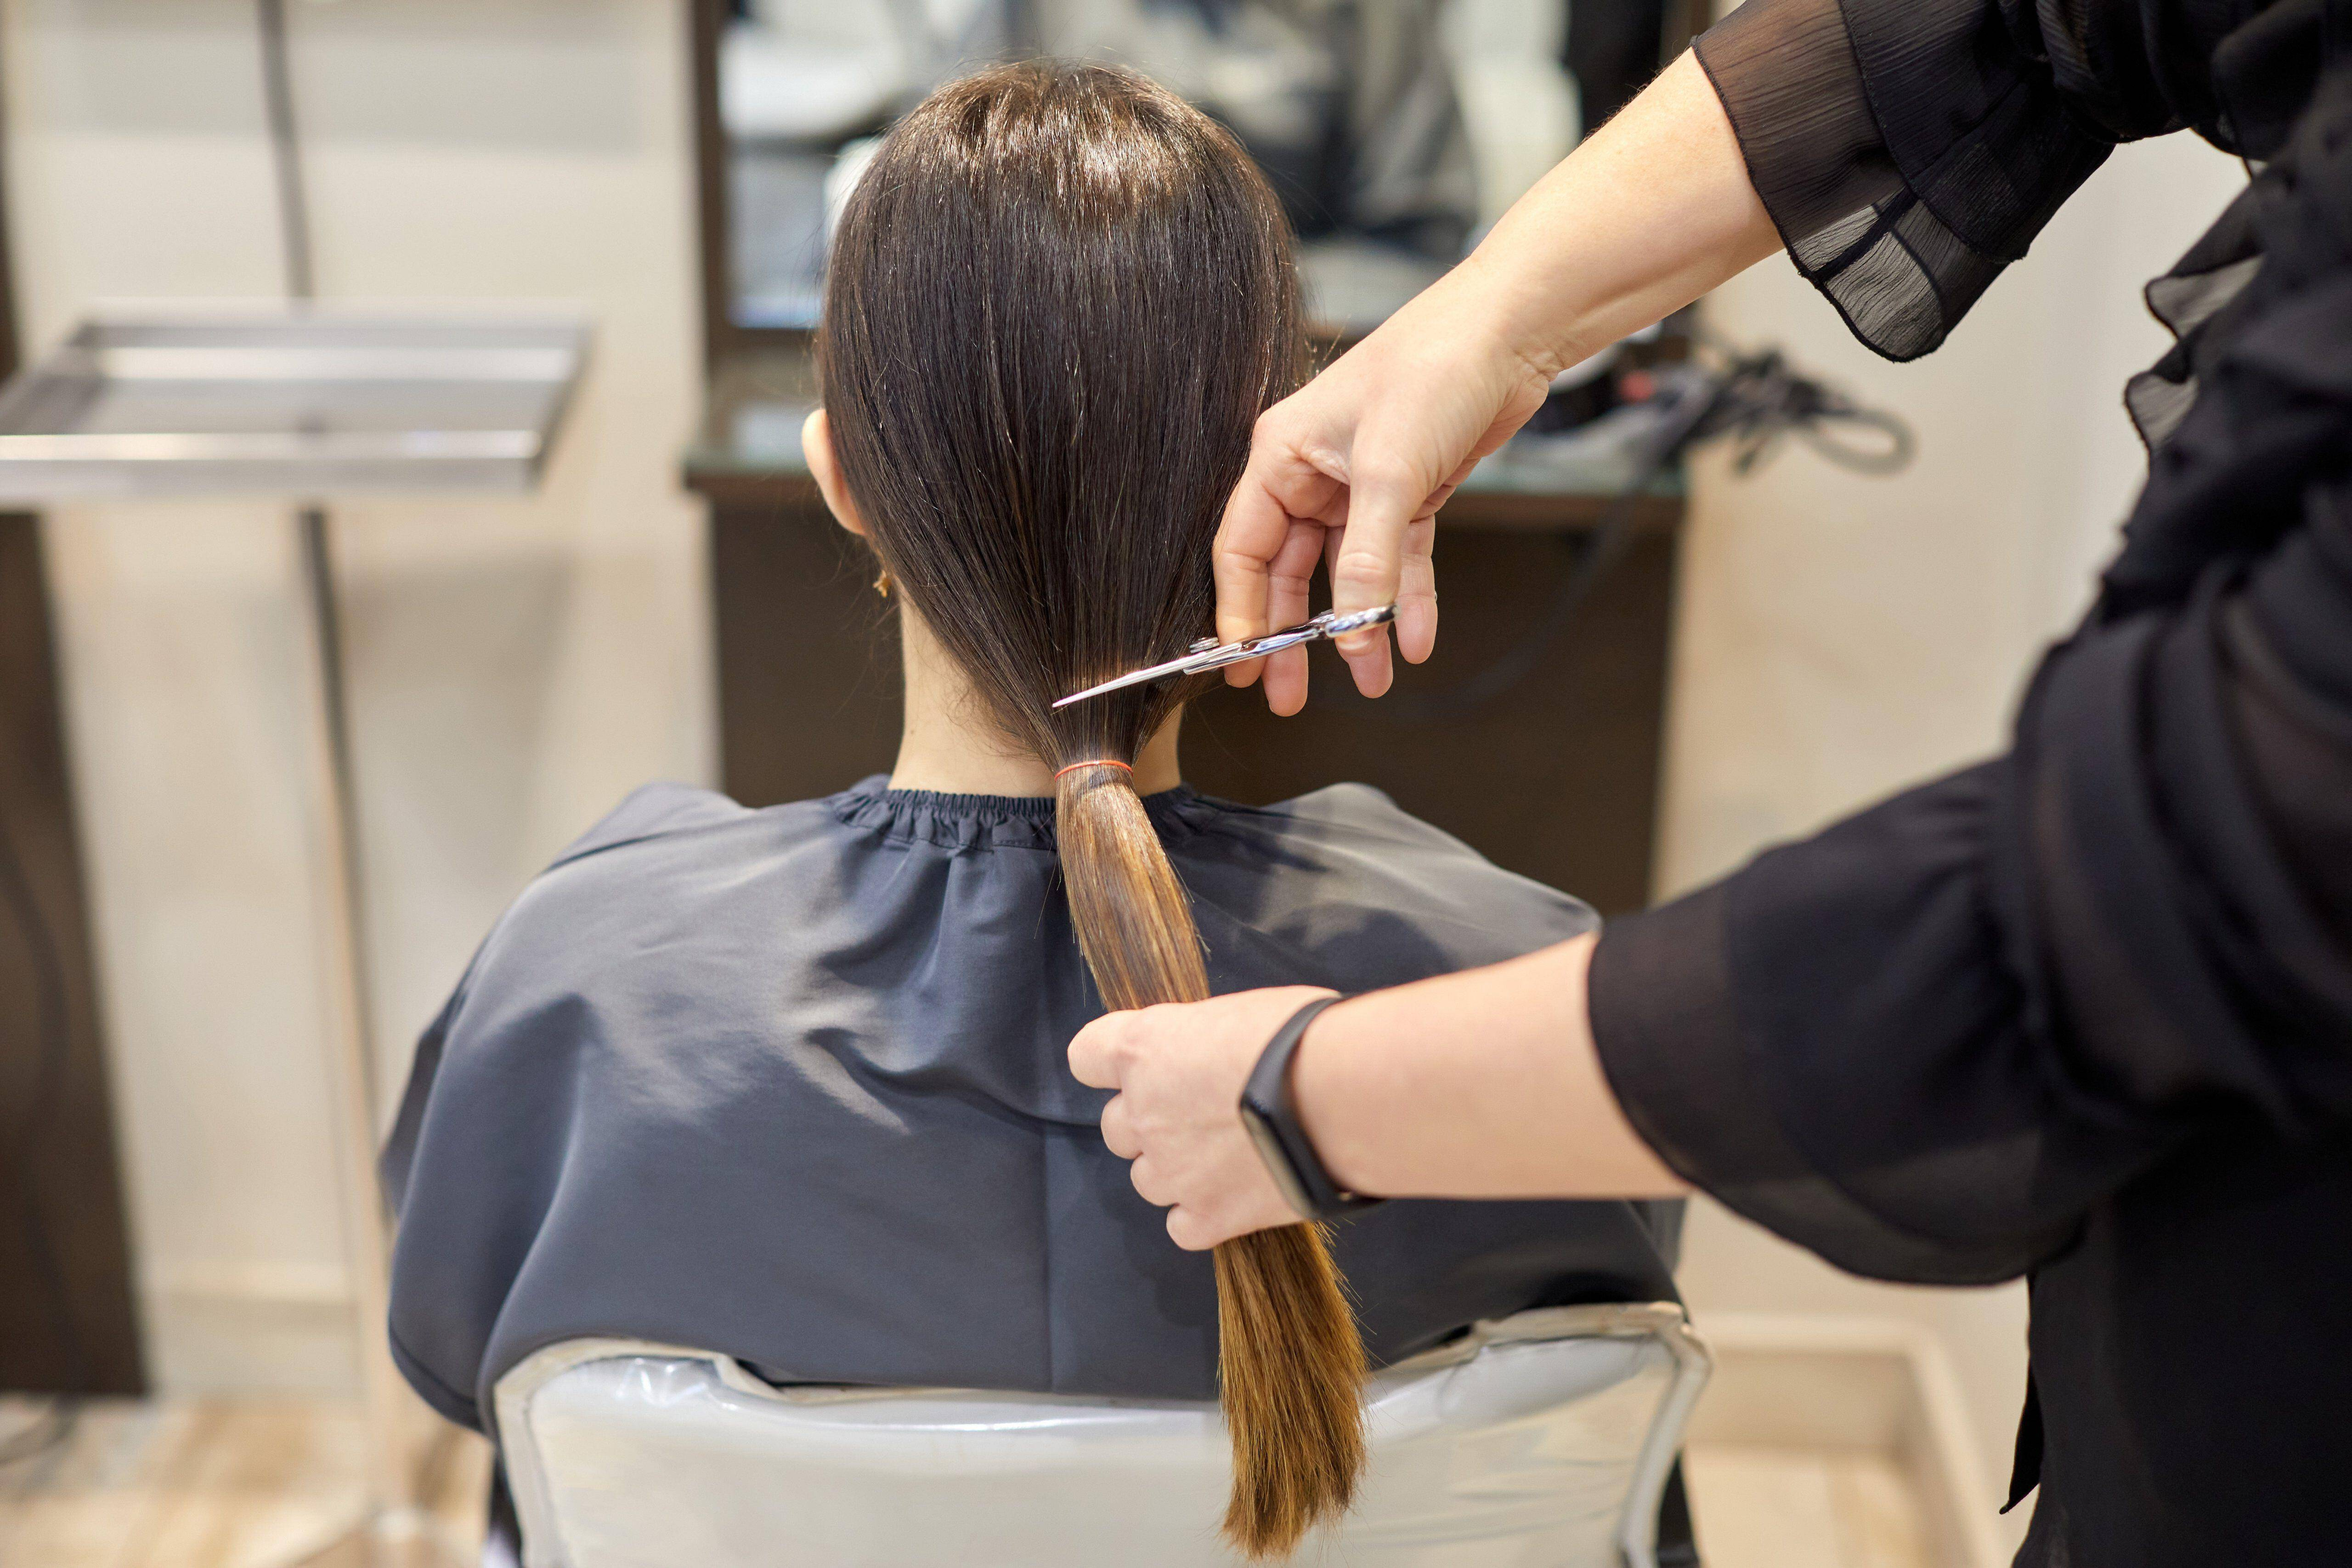 India salon told to pay nearly $271,000 for botched haircut